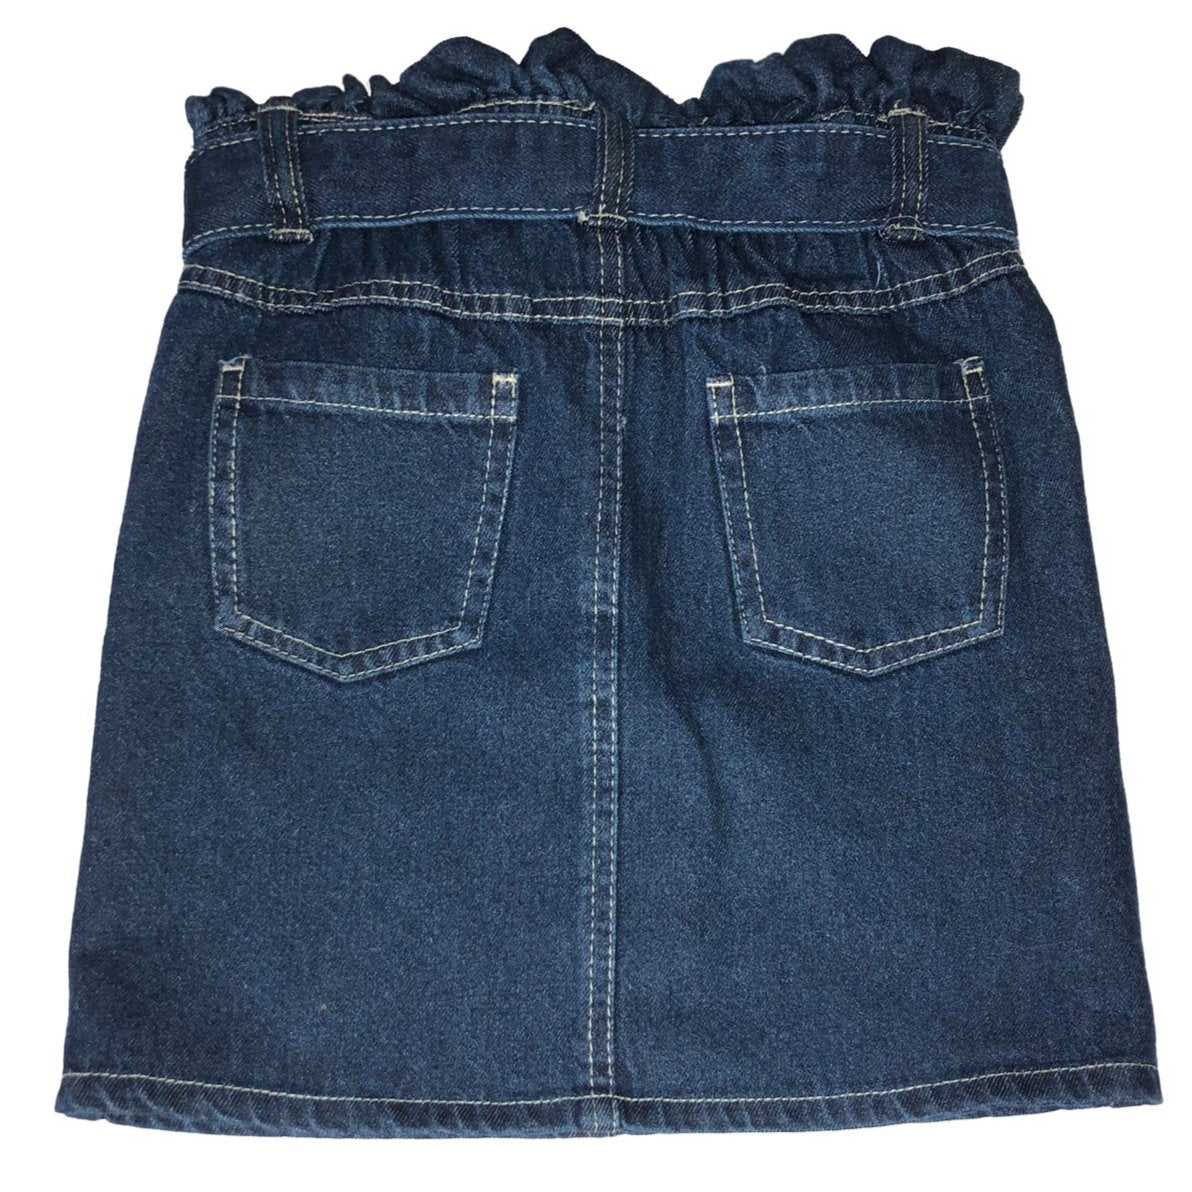 Chillipop Girls Denim Skirt